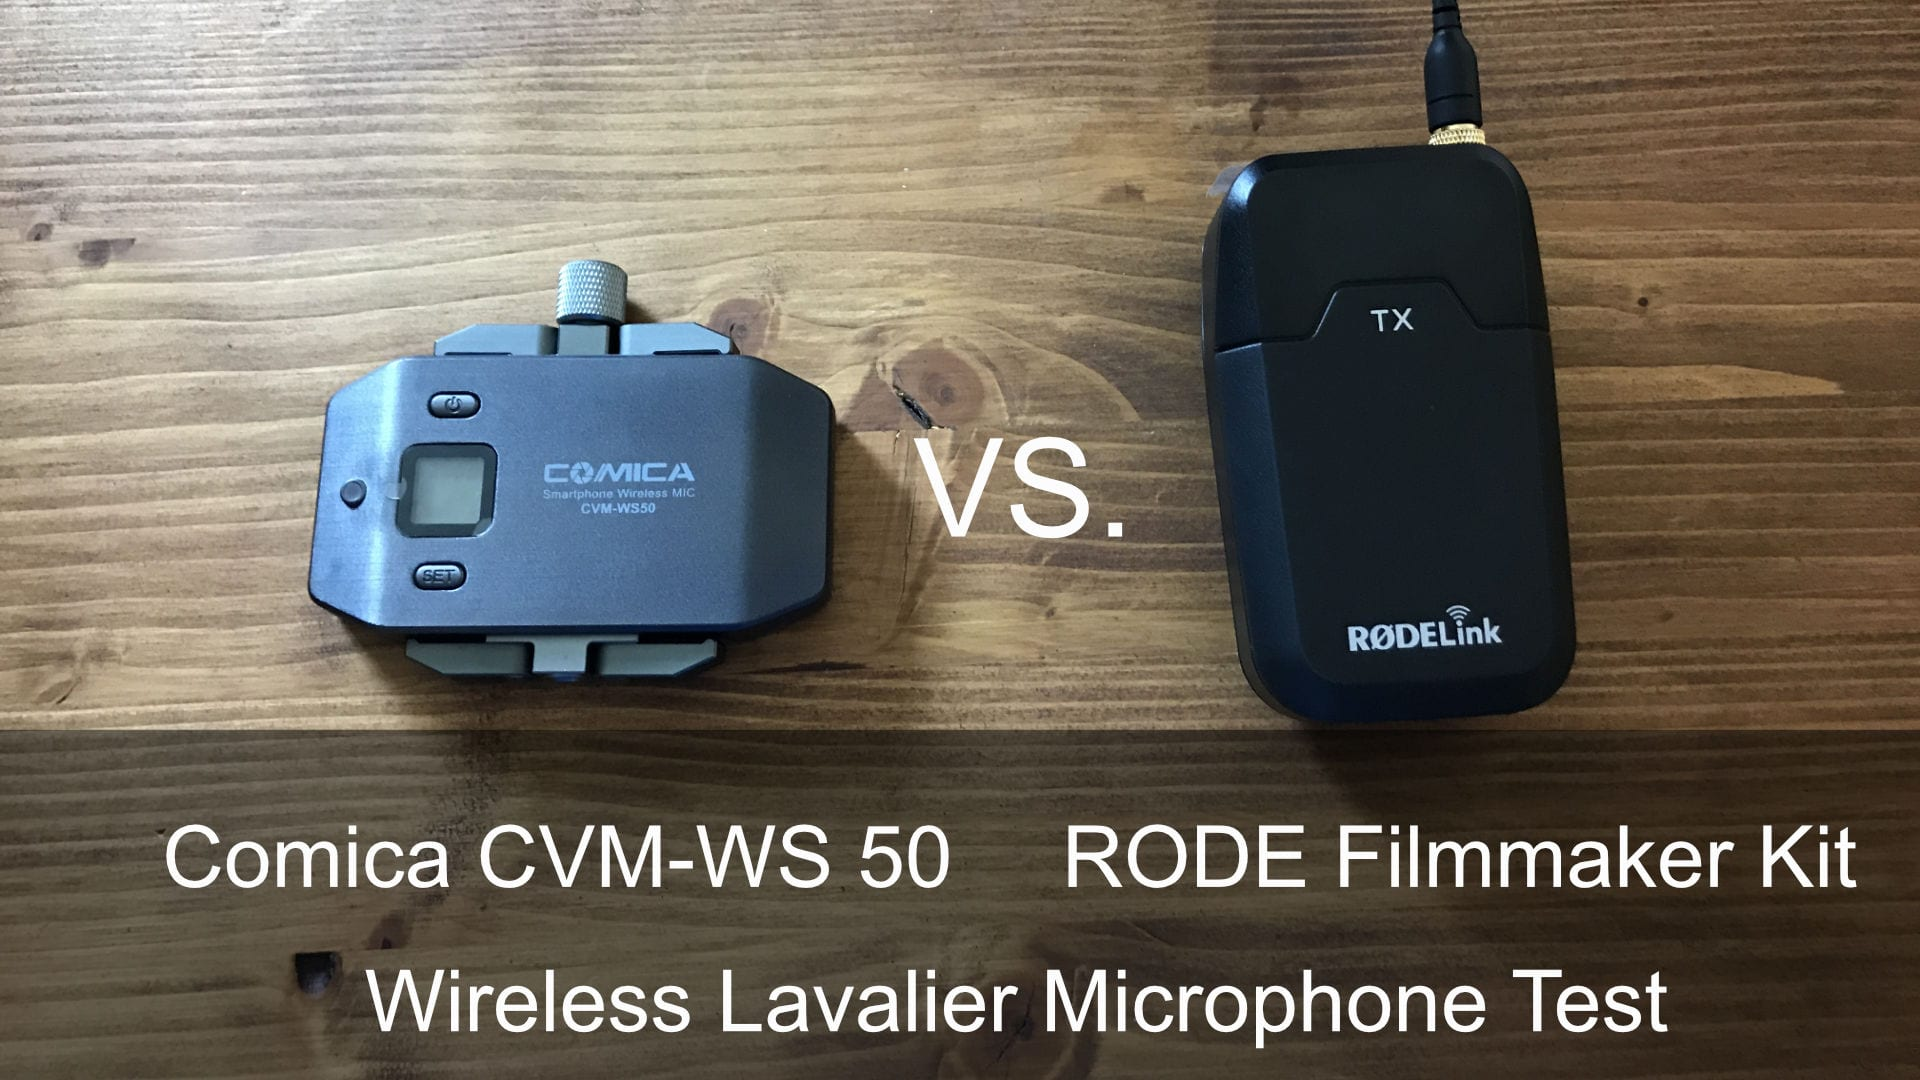 Vergleich: RODE Filmmaker Kit vs. Comica CVM-WS50 wireless lavalier Mikrofone